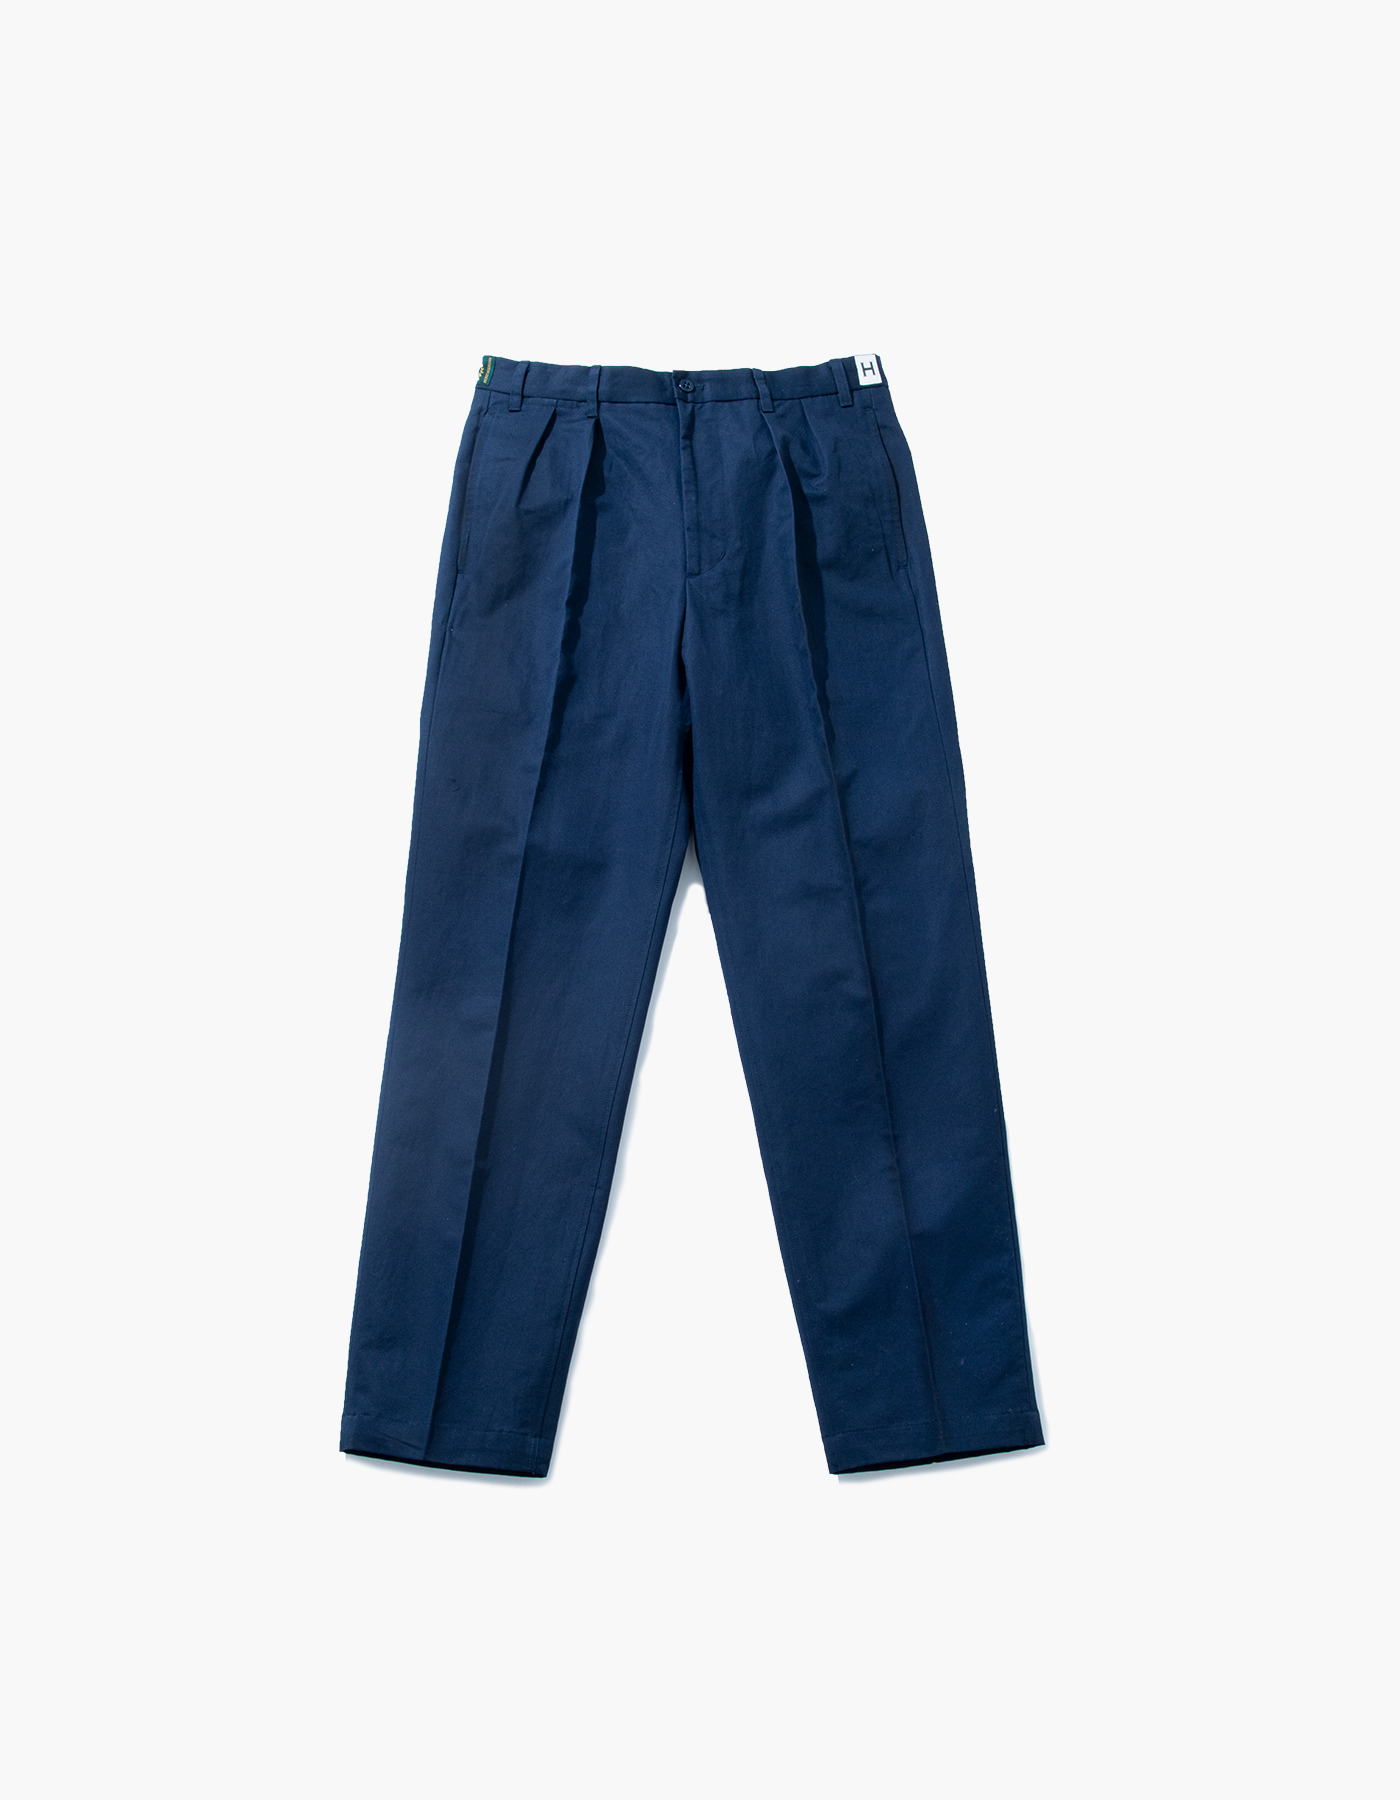 VINTAGE WASHER LINEN CHINO PANTS / NAVY